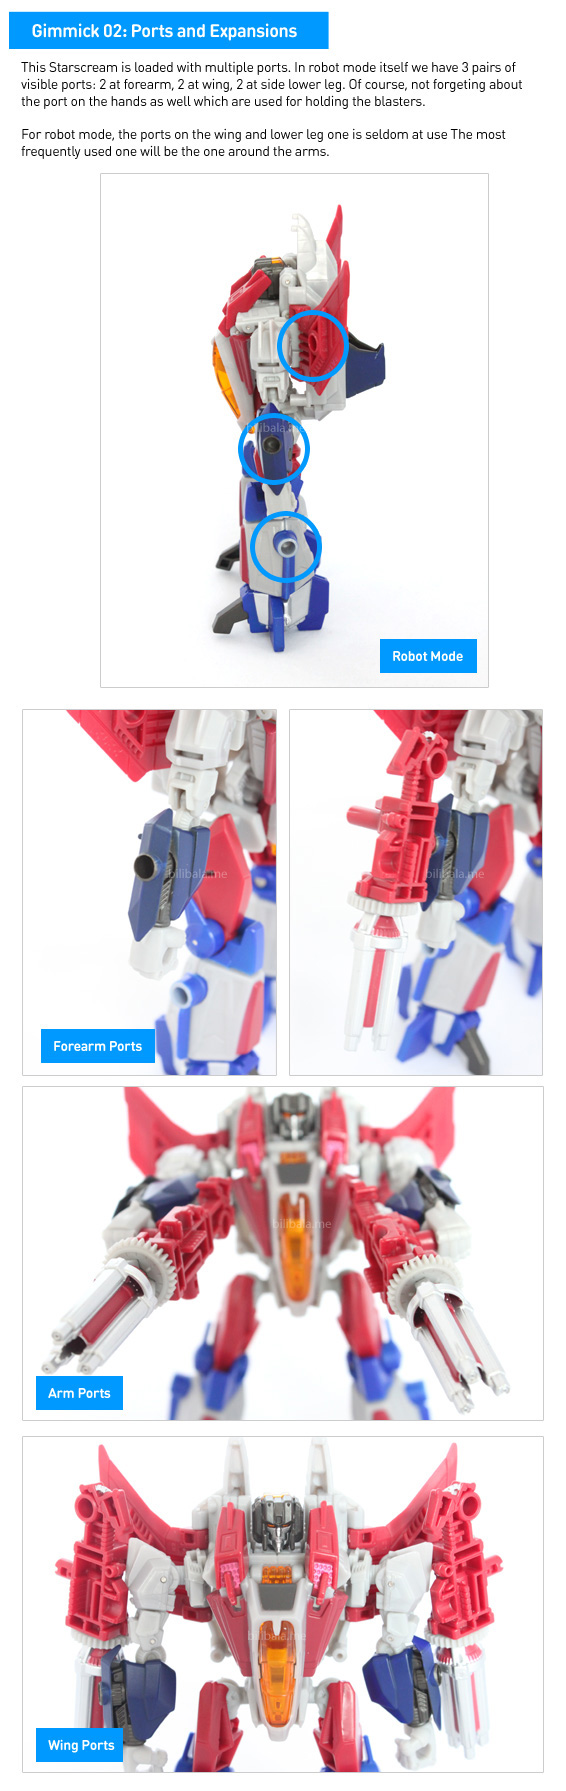 FOC_Starscream_gimmick2